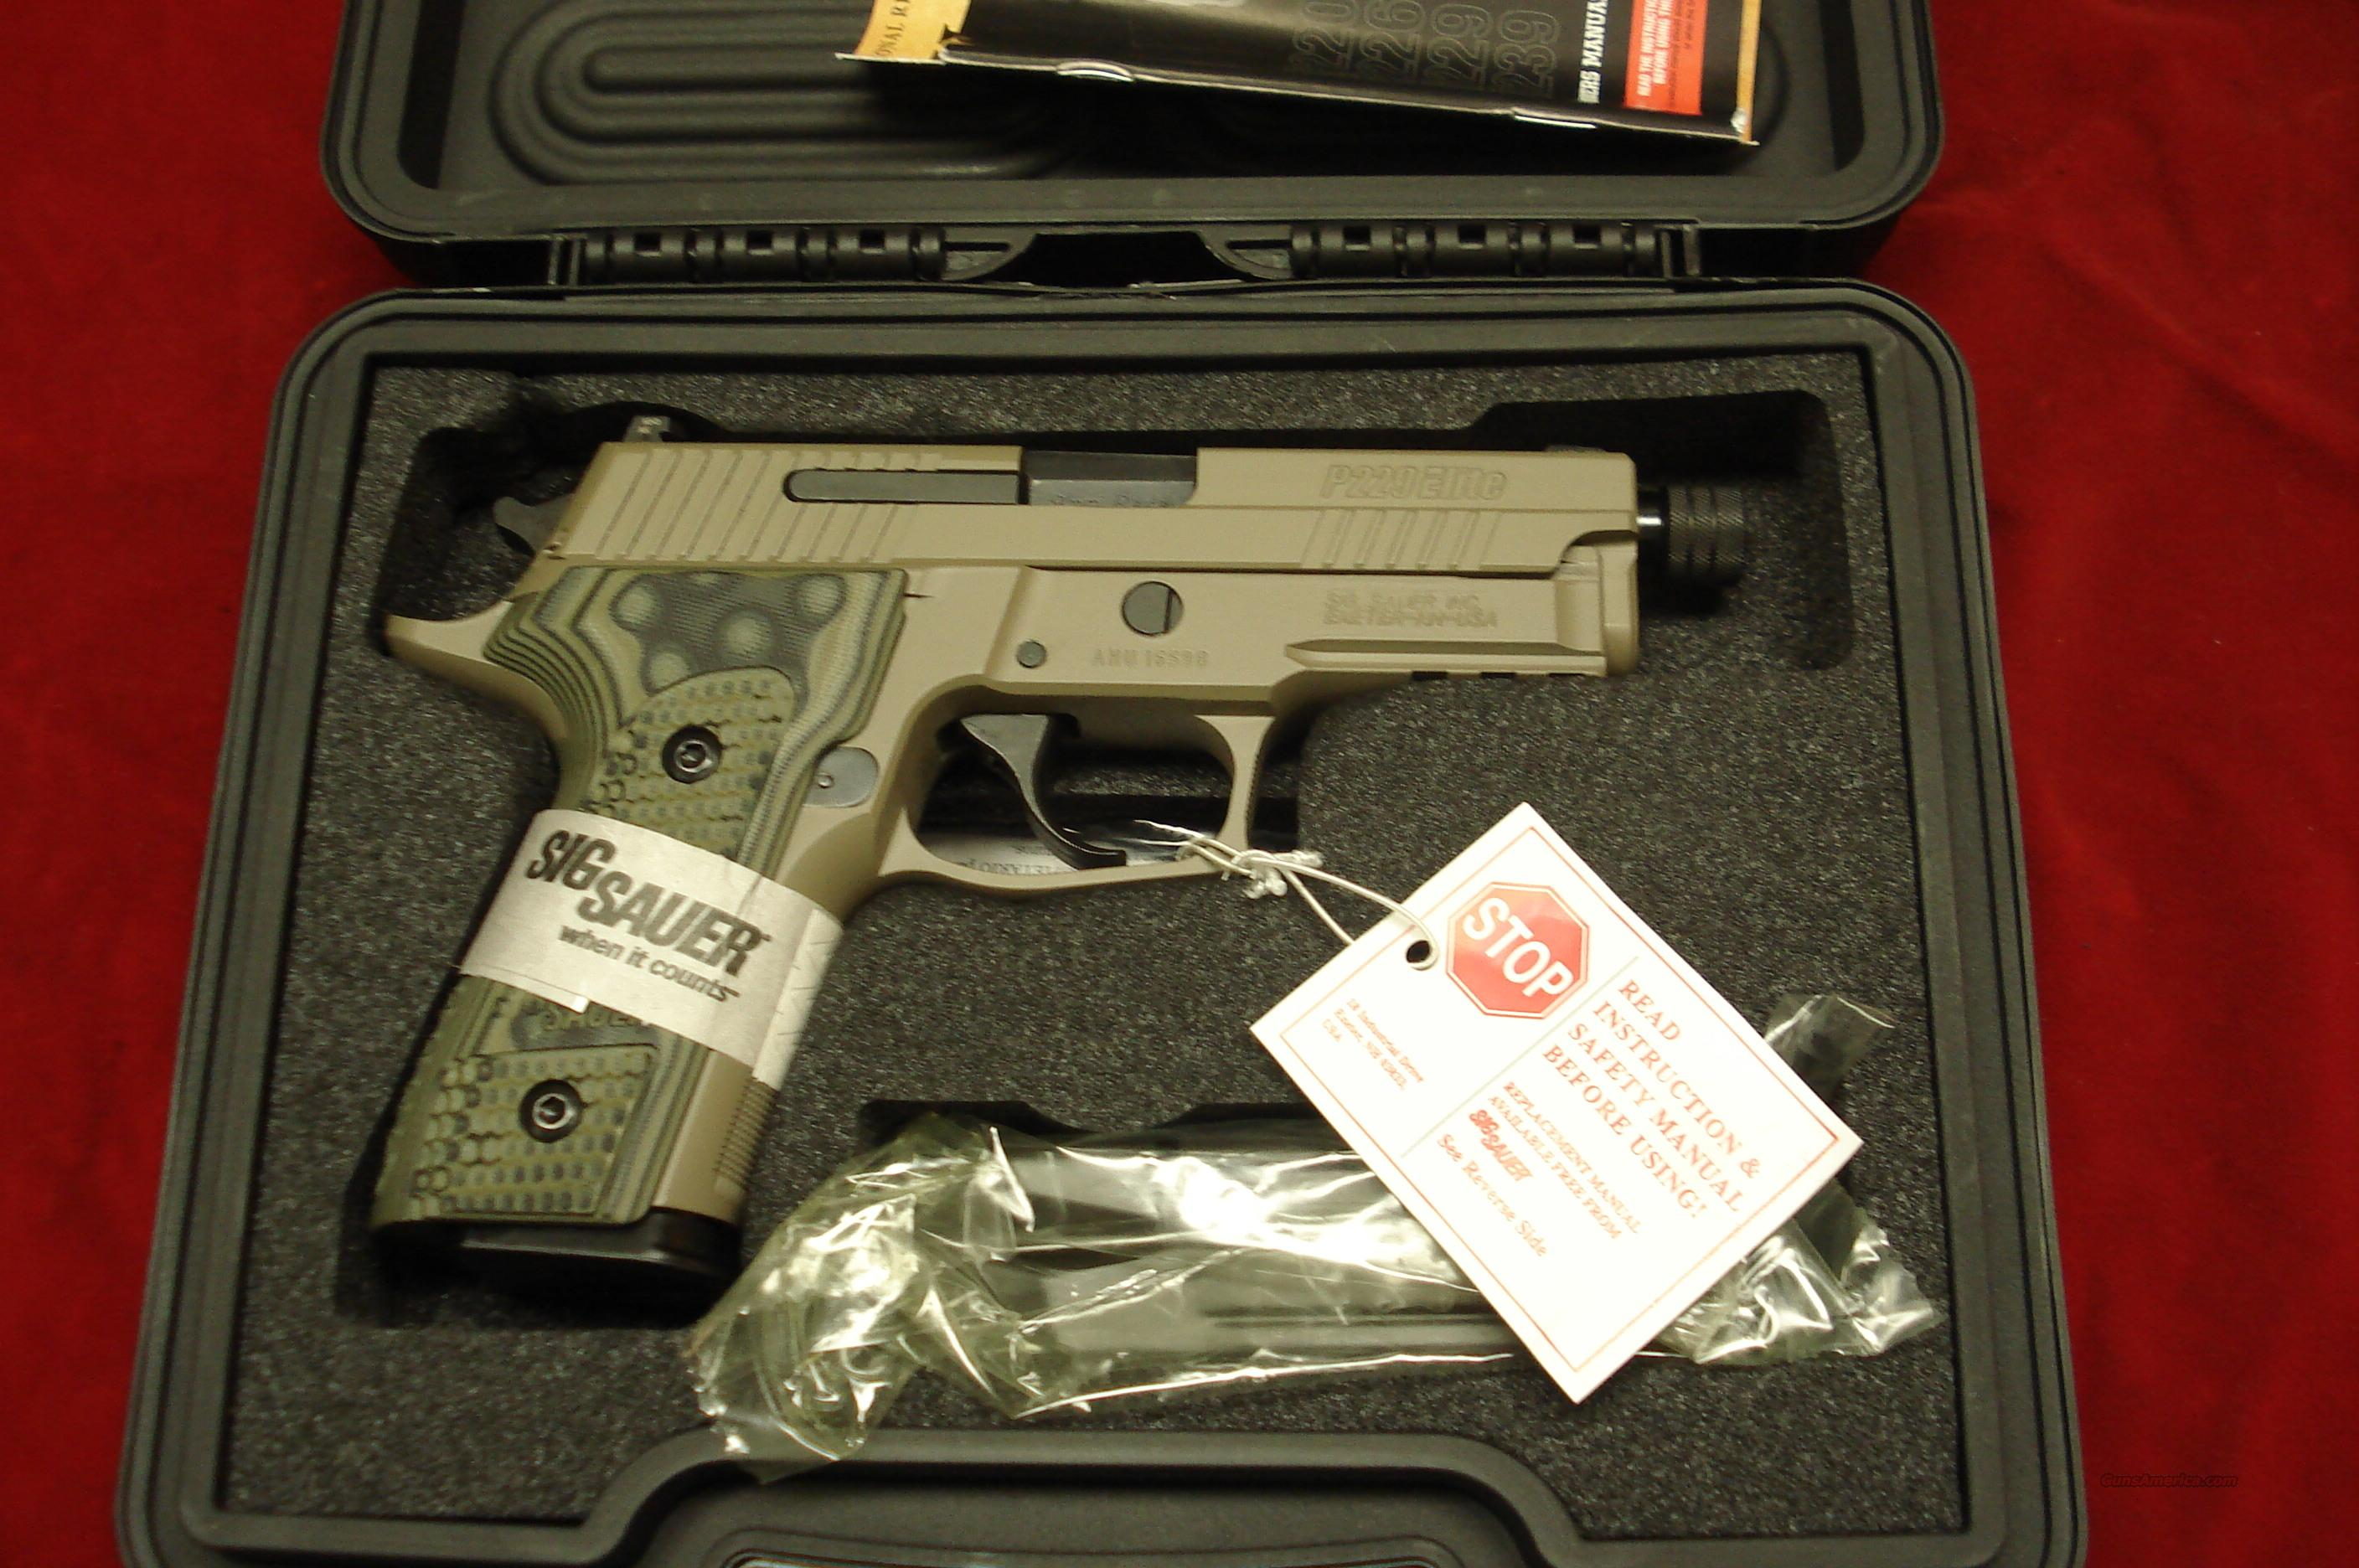 SIG SAUER P229 SCORPION ELITE THREADED BARREL 9MM FLAT DARK EARTH WITH NIGHT SIGHTS NEW   Guns > Pistols > Sig - Sauer/Sigarms Pistols > P229